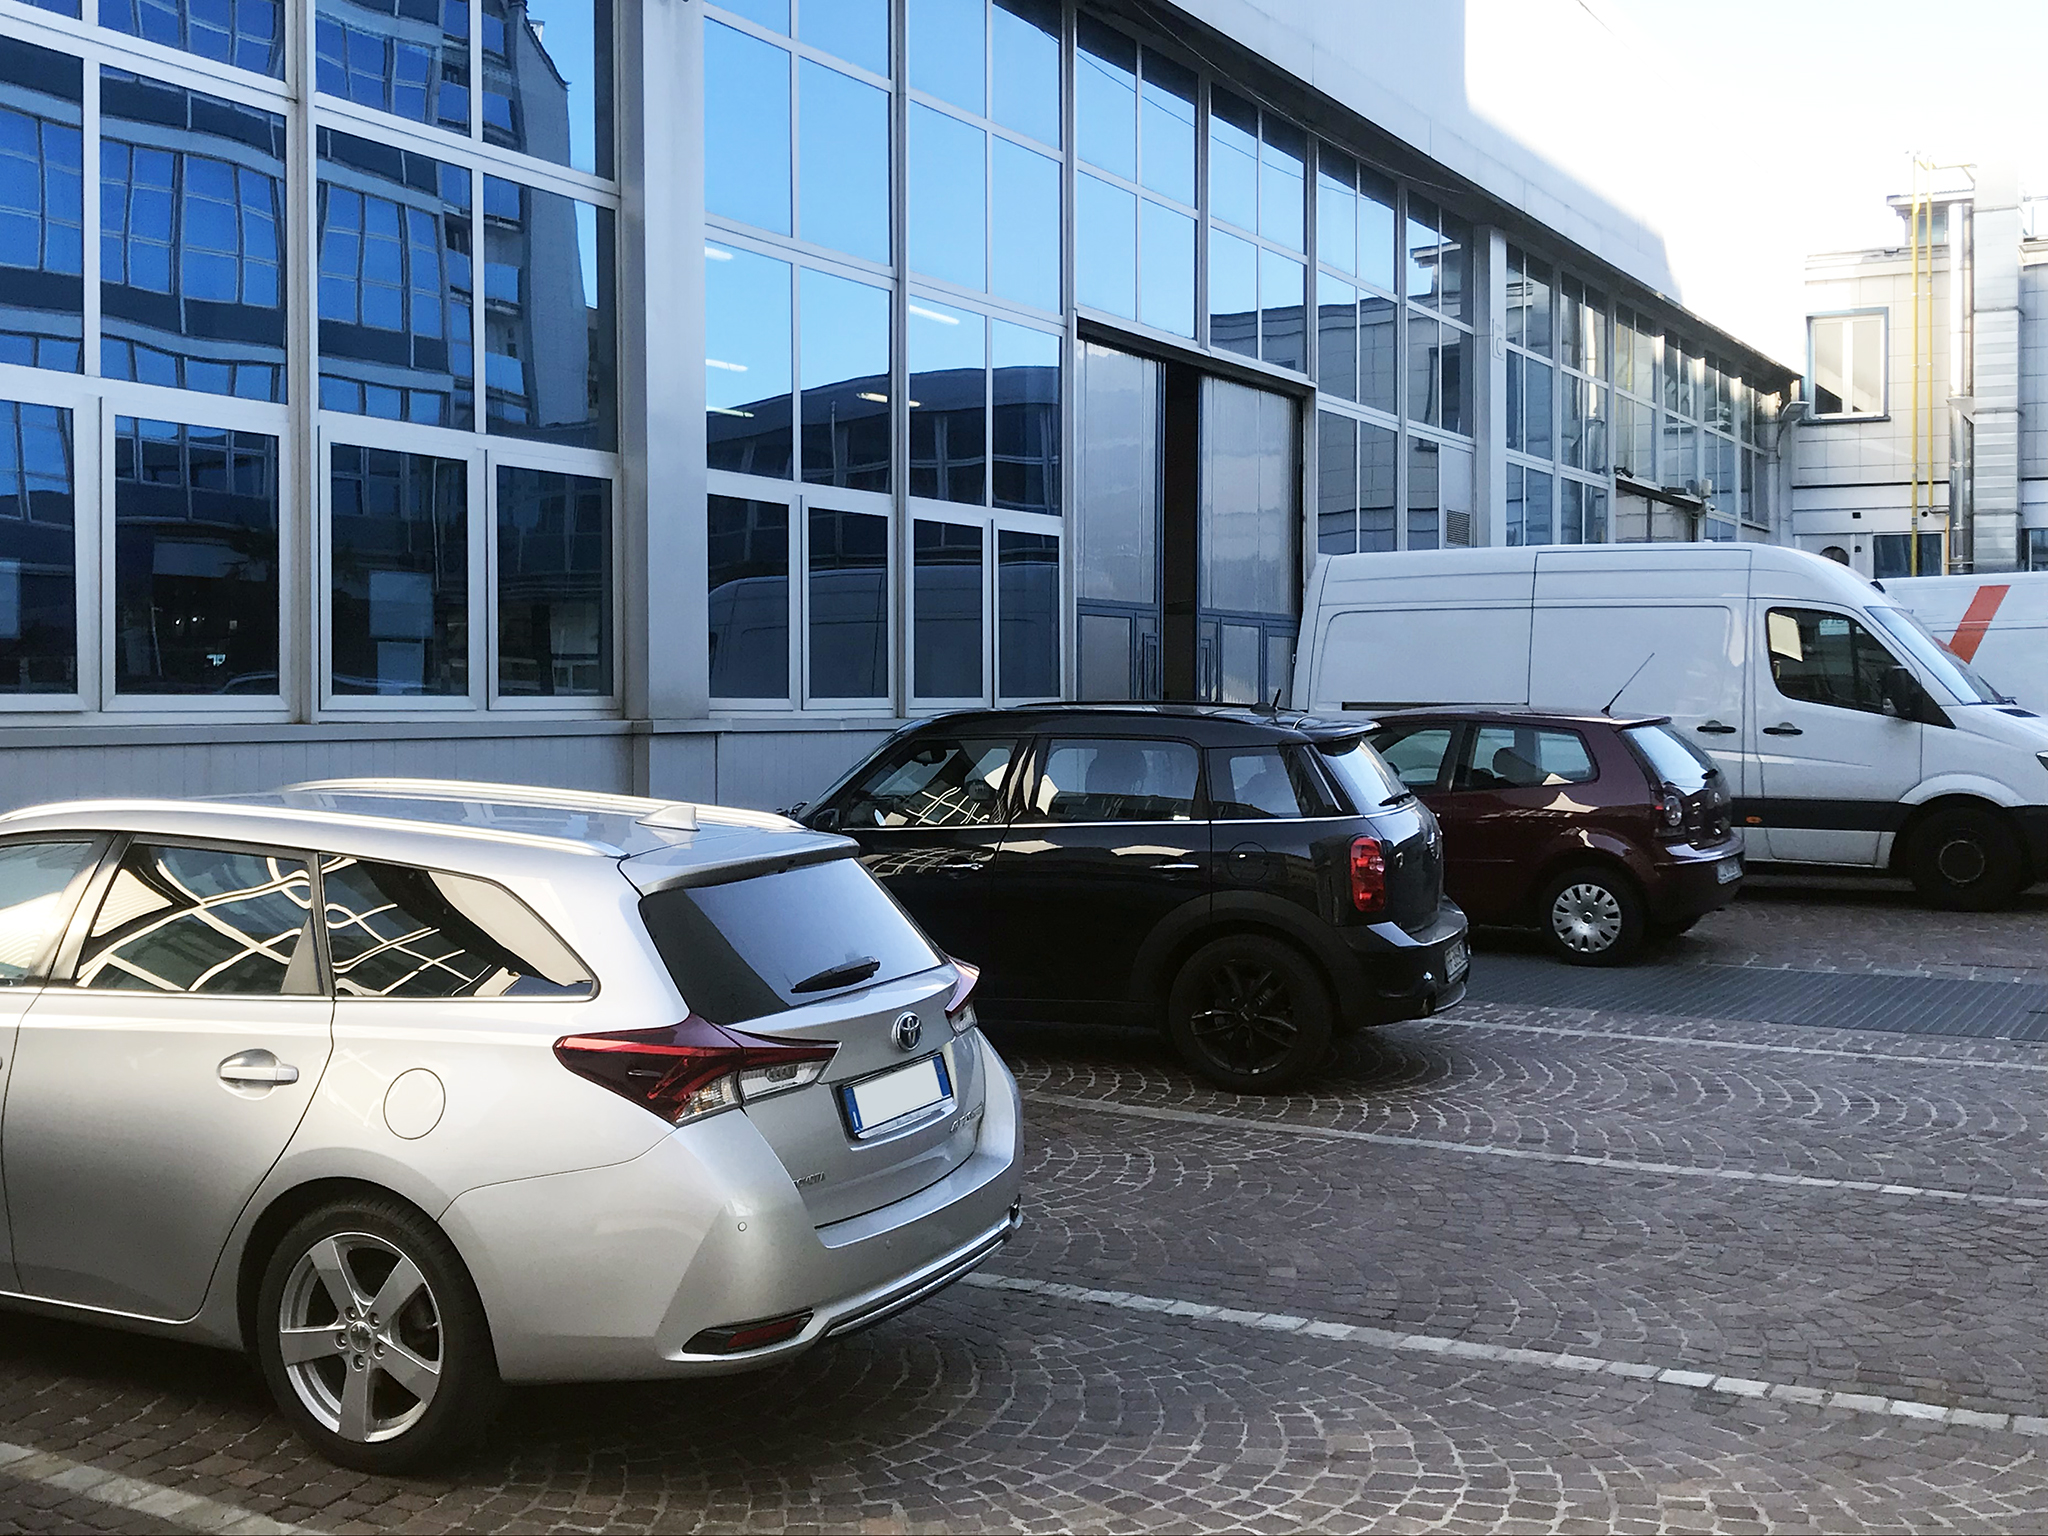 Outdoor parking spaces in the main courtyard